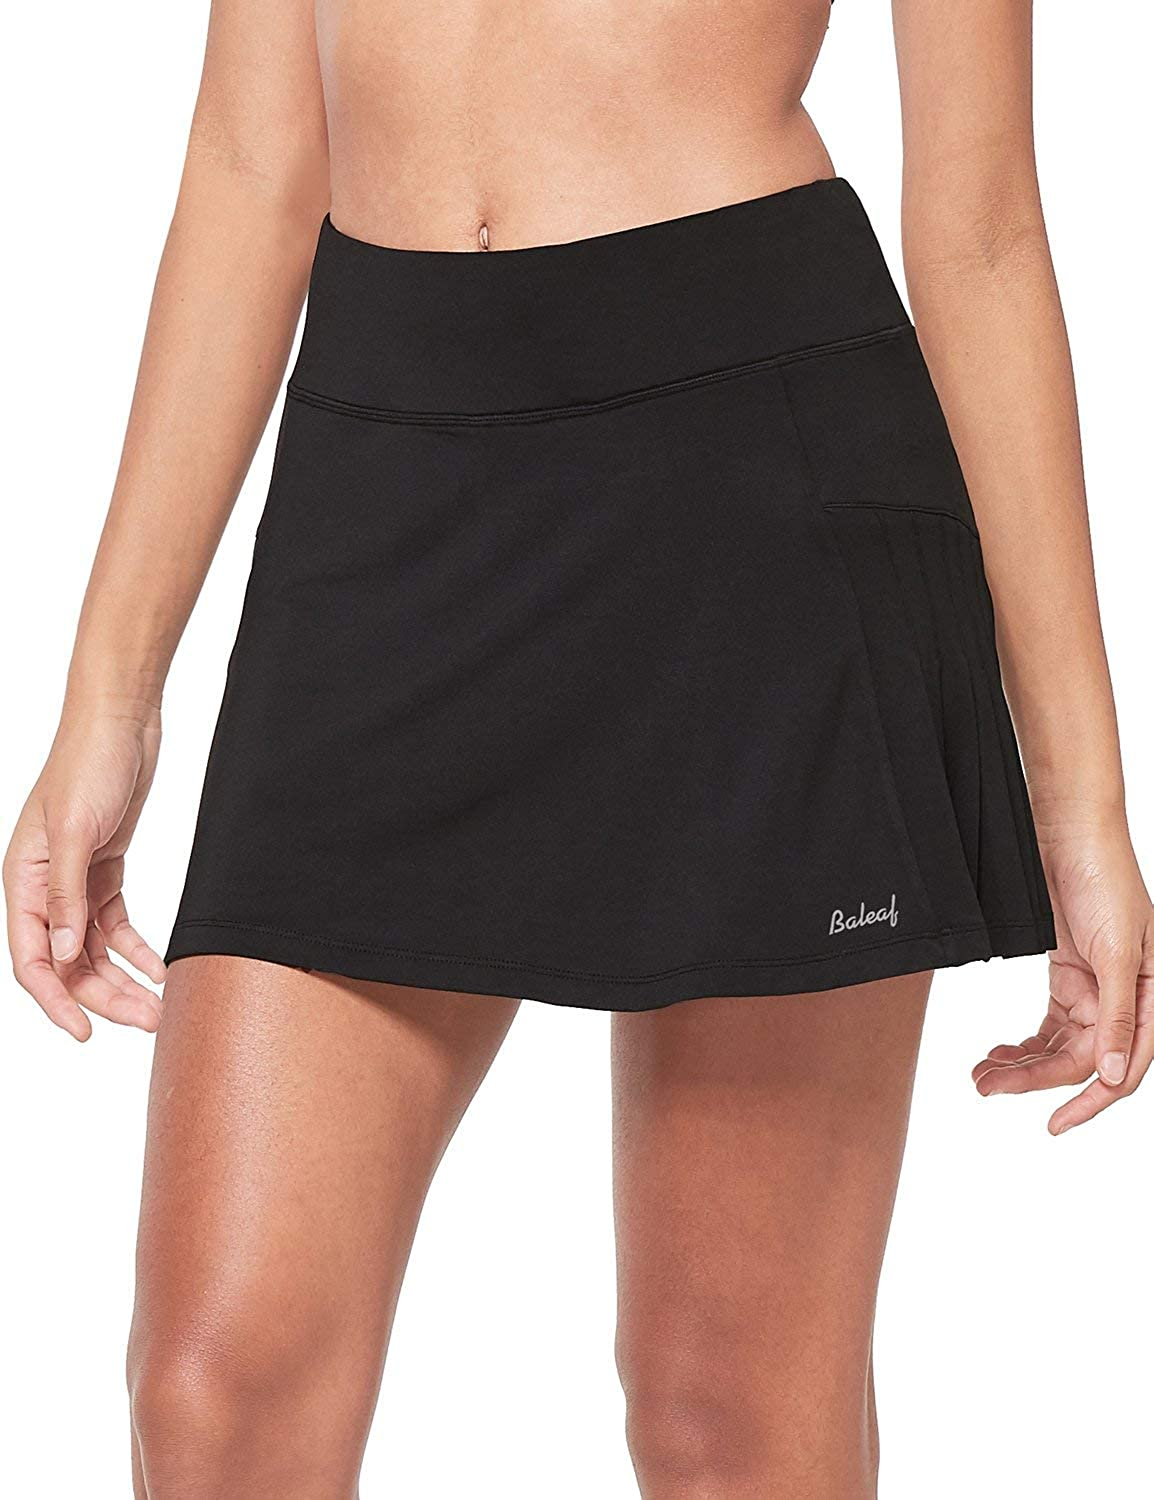 Be super welcome BALEAF Women's High Waisted Tennis Skirts Pleated Sk Our shop most popular Golf Skorts